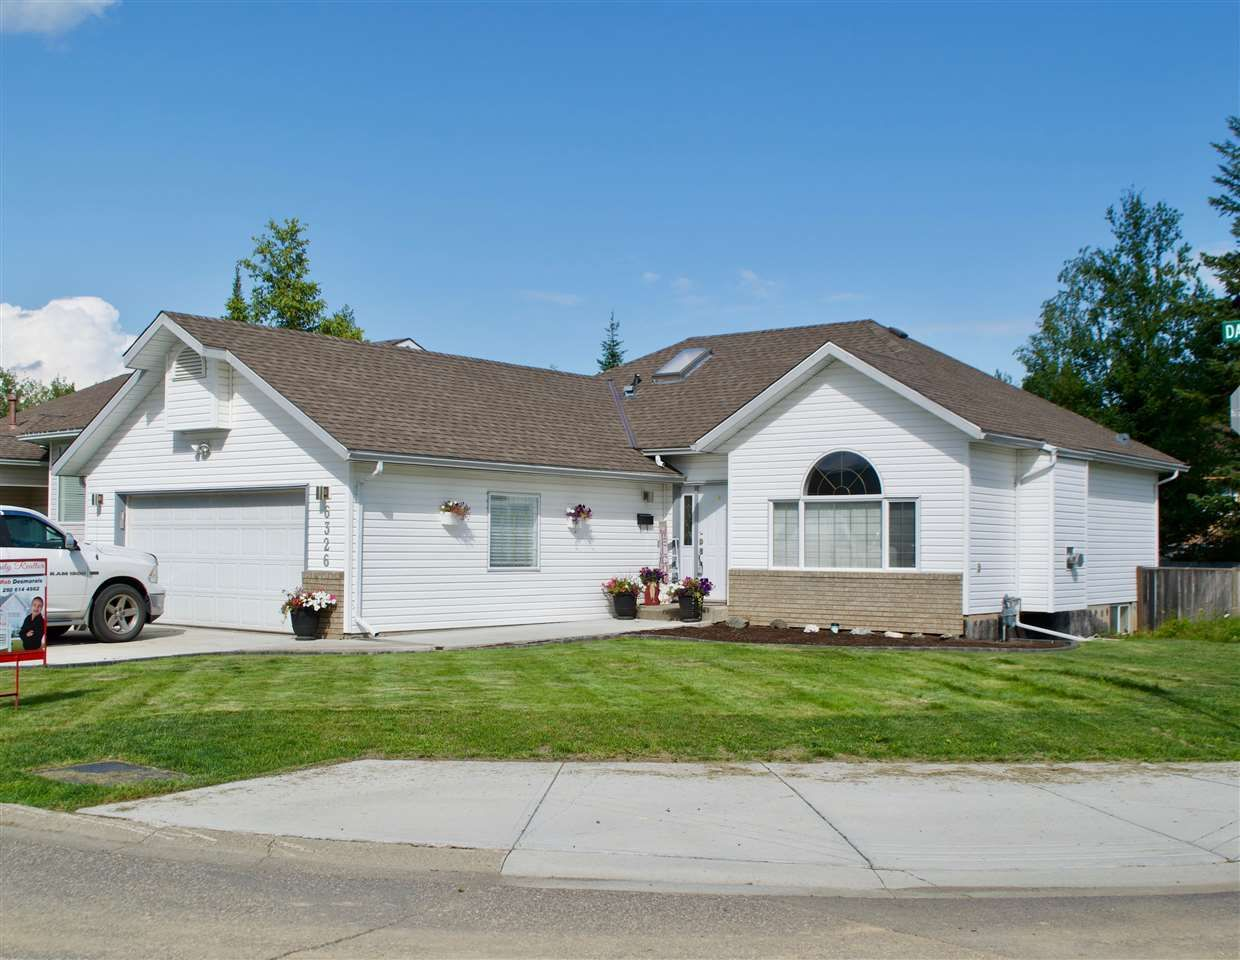 Main Photo: 6326 DAWSON Road in Prince George: Valleyview House for sale (PG City North (Zone 73))  : MLS®# R2396079